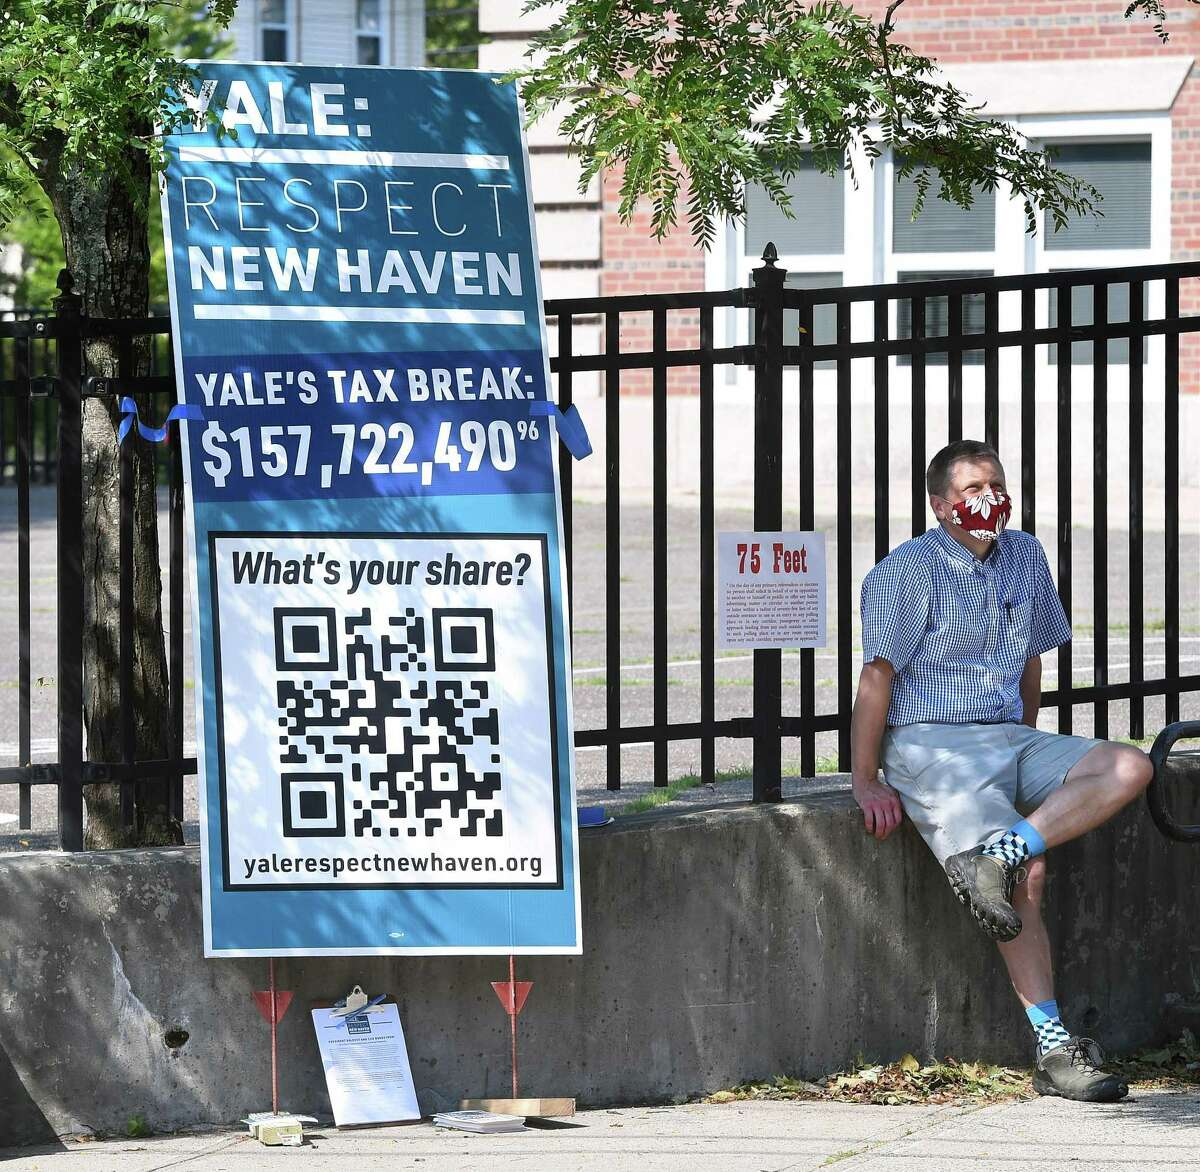 New Haven Alder Adam Marchand sits outside of the Edgewood School polling place in New Haven on Aug. 11, 2020, next to a sign about Yale University's tax exemption.